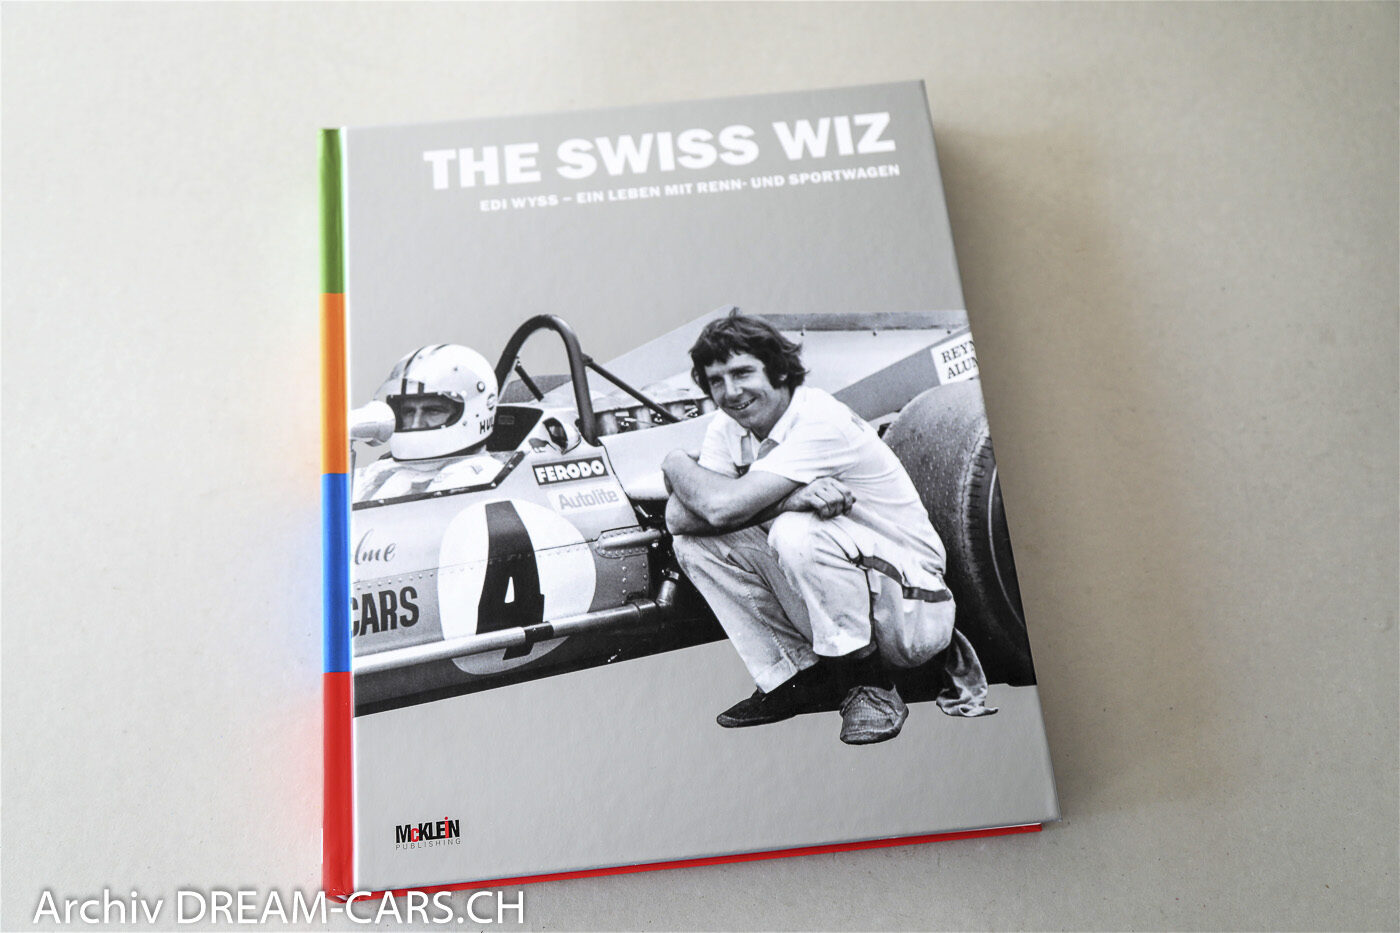 The Swiss Wiz